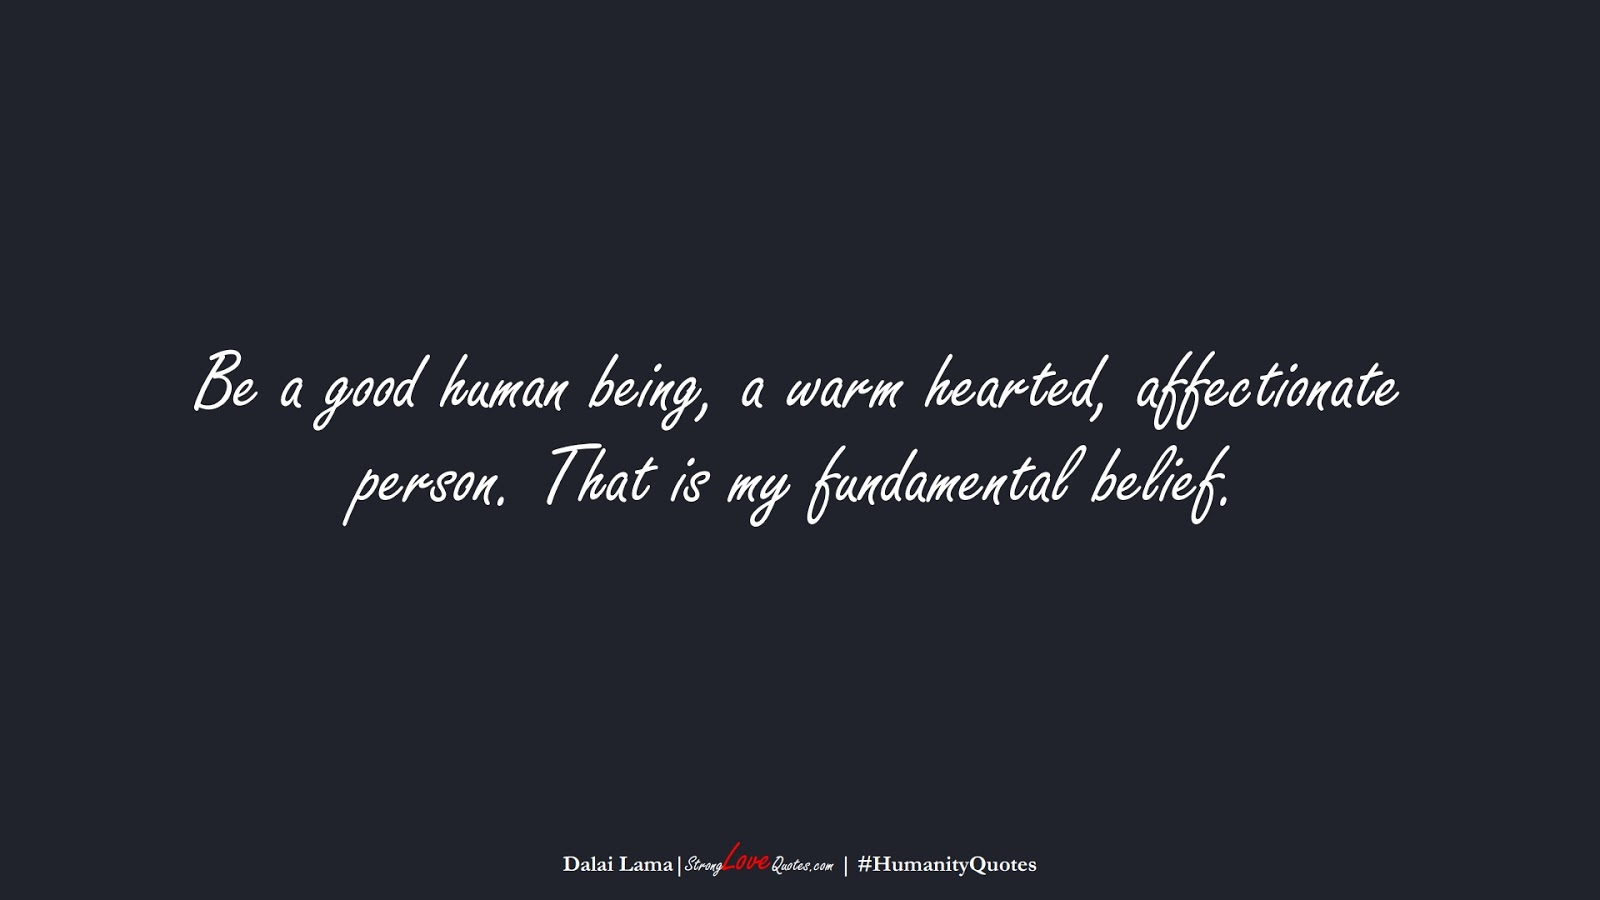 Be a good human being, a warm hearted, affectionate person. That is my fundamental belief. (Dalai Lama);  #HumanityQuotes